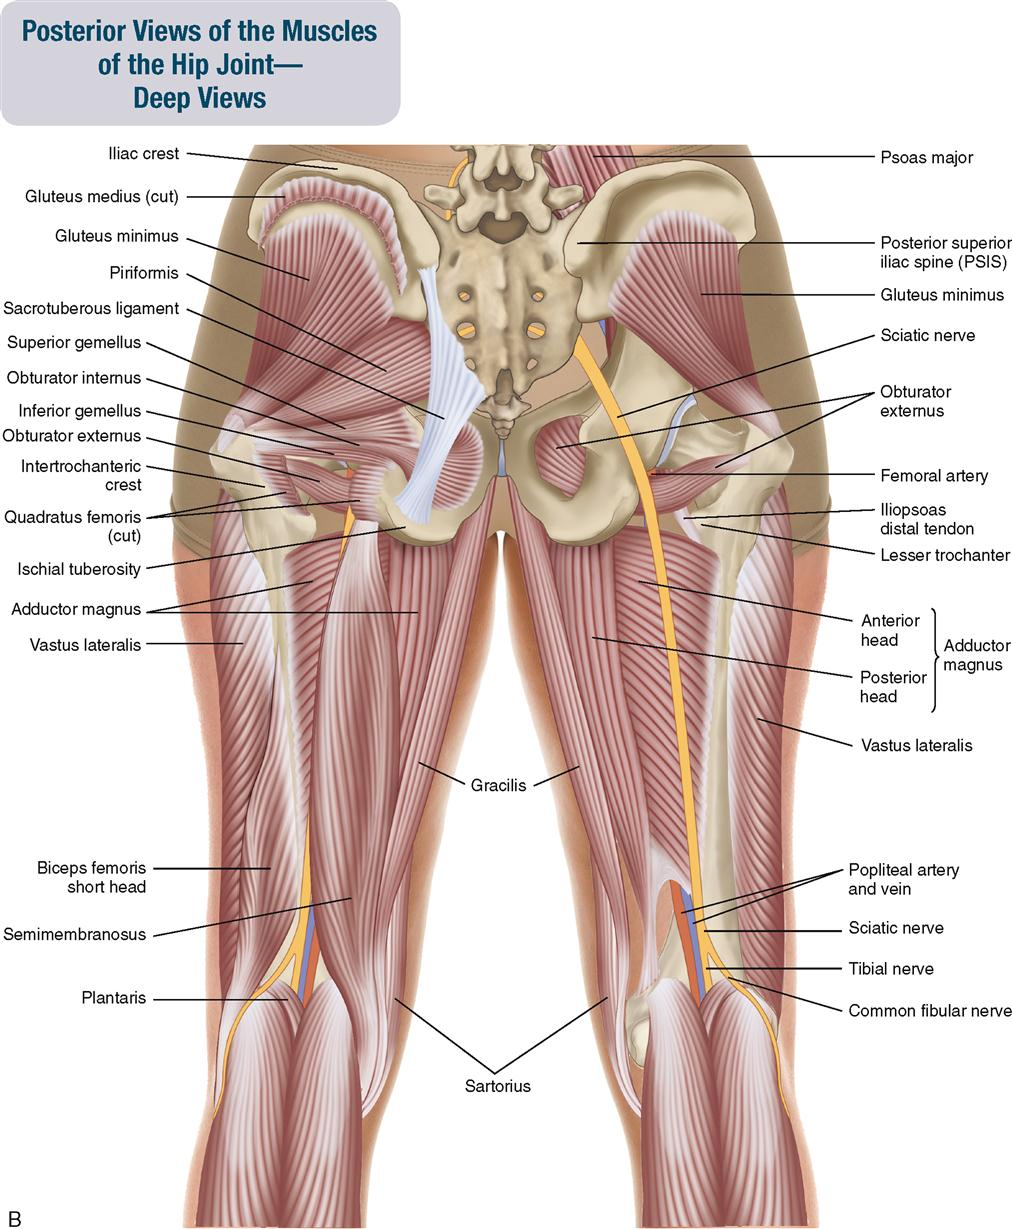 hight resolution of figure 10 2 posterior views of the muscles of the hip joint a superficial view on the left and an intermediate view on the right